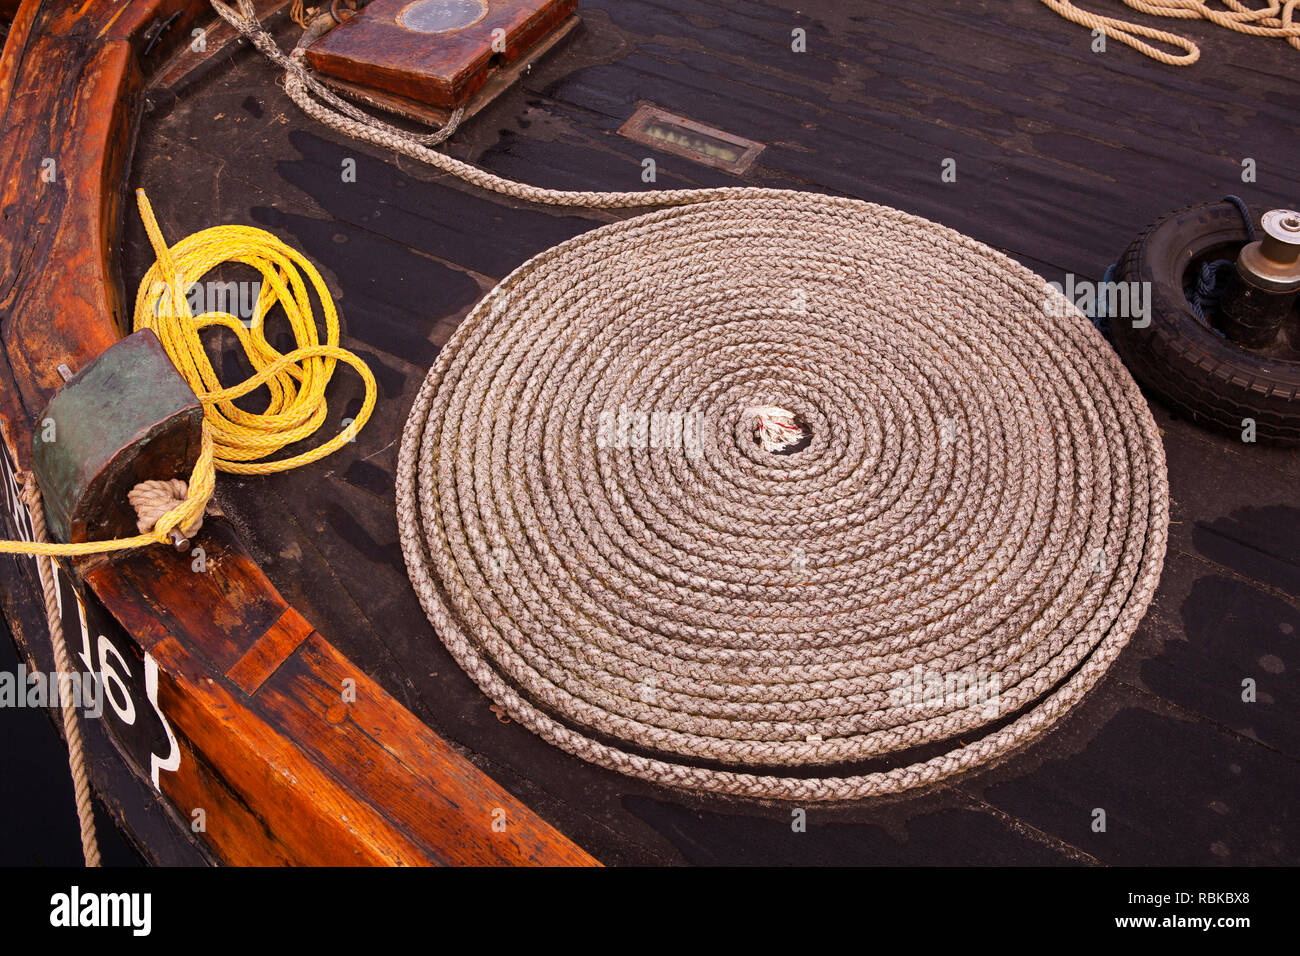 Coil of rope on a boat at Spakenburg, Netherlands - Stock Image